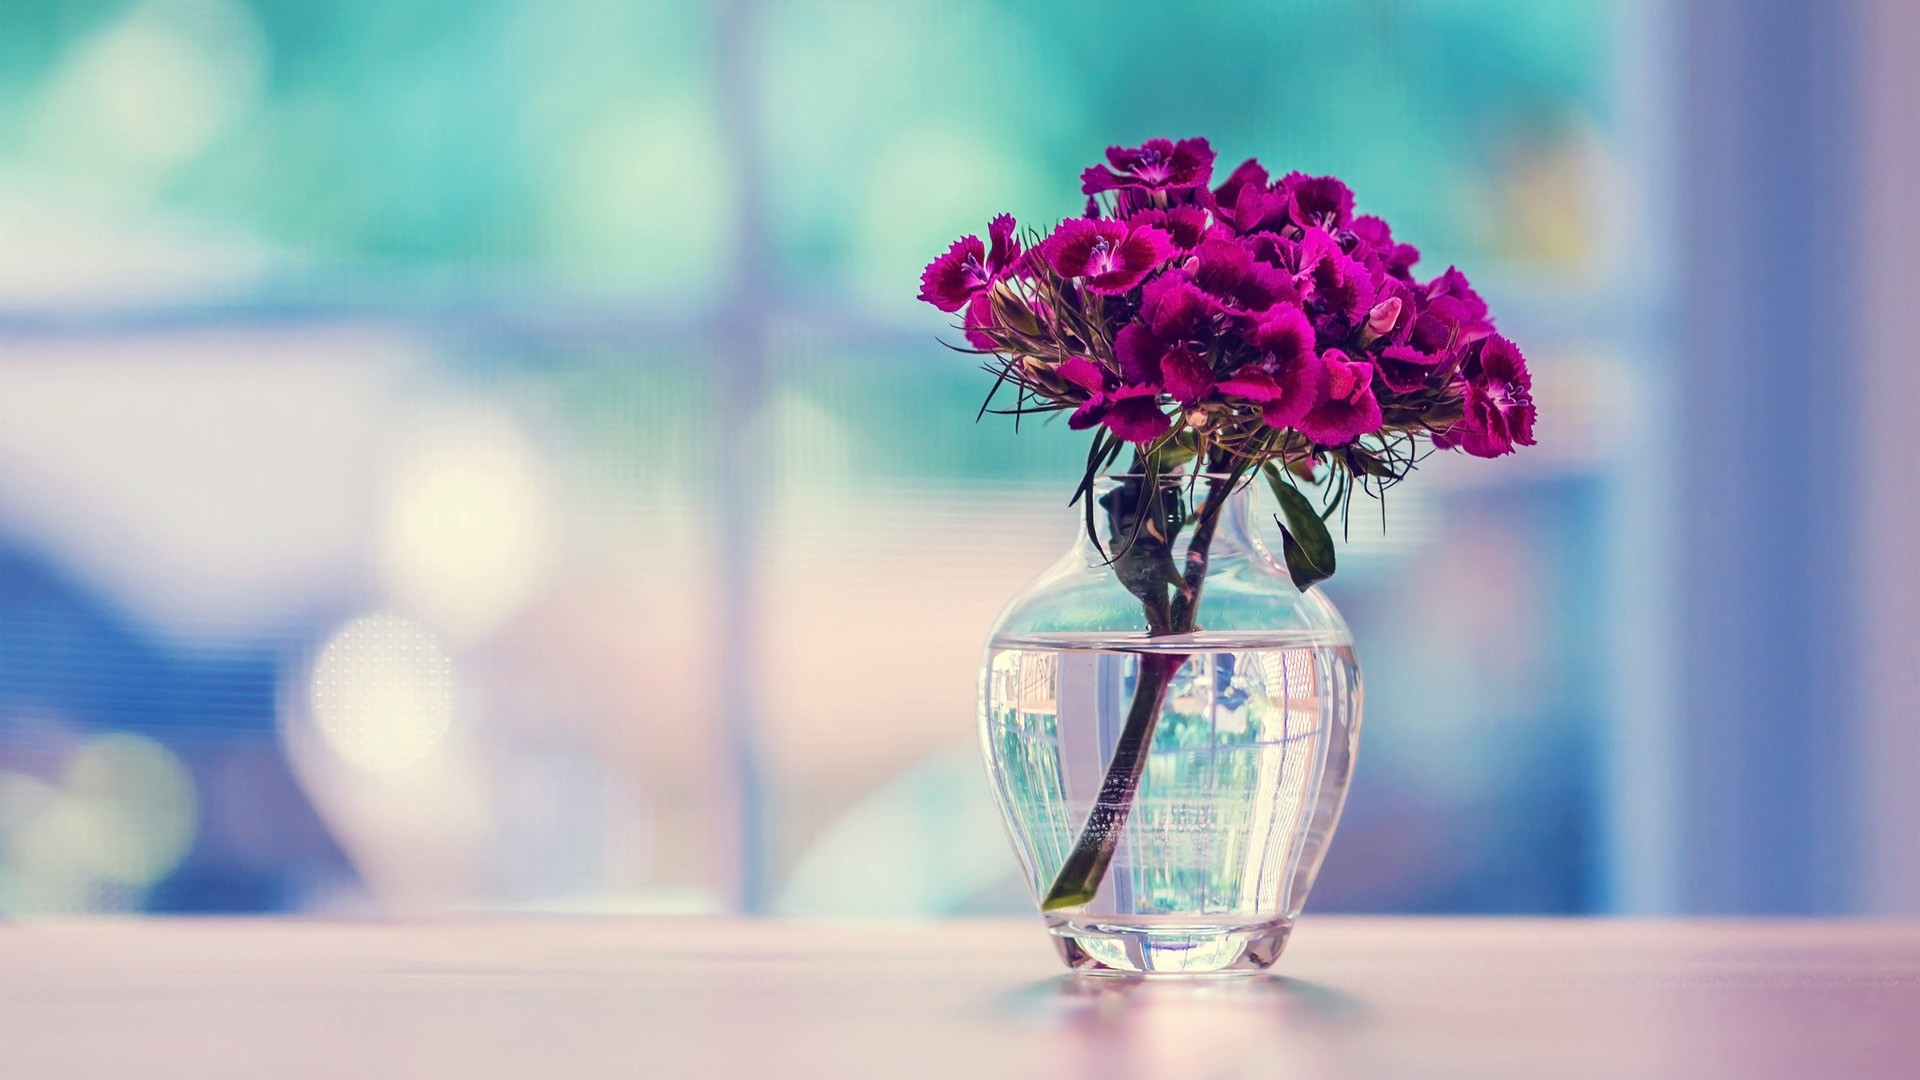 Flower Desktop Backgrounds 60 Images